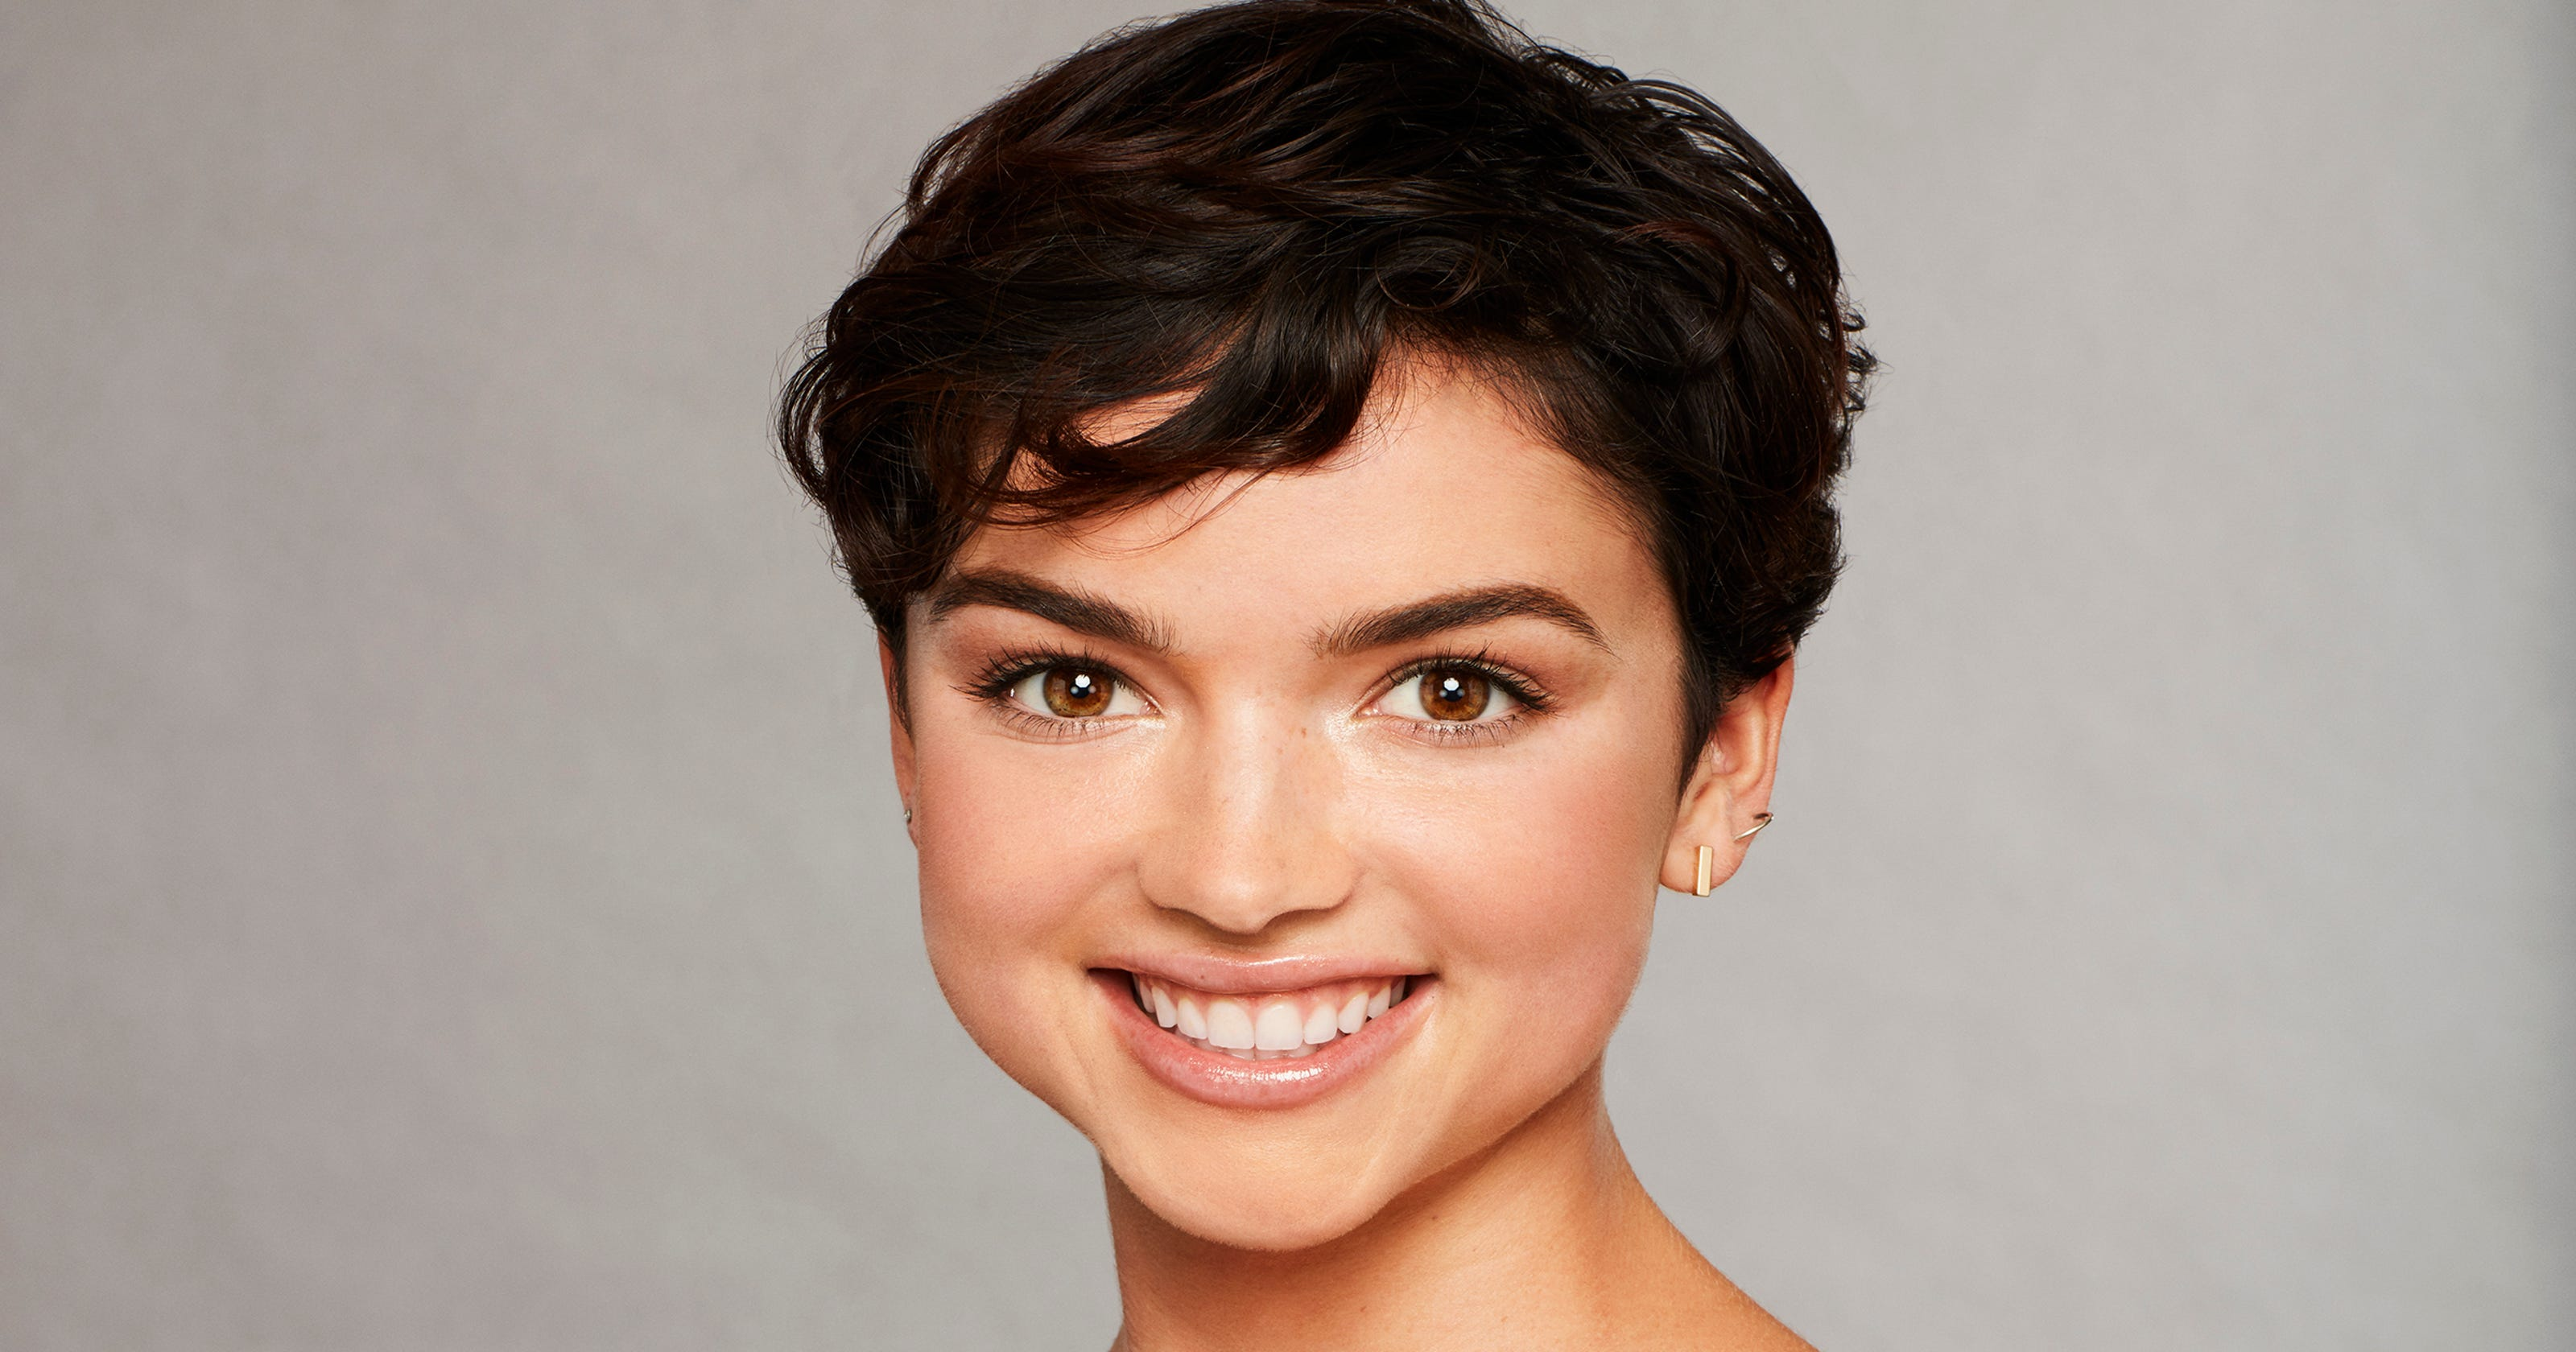 Bachelor Favorite Bekah Martinez Welcomes Baby Girl